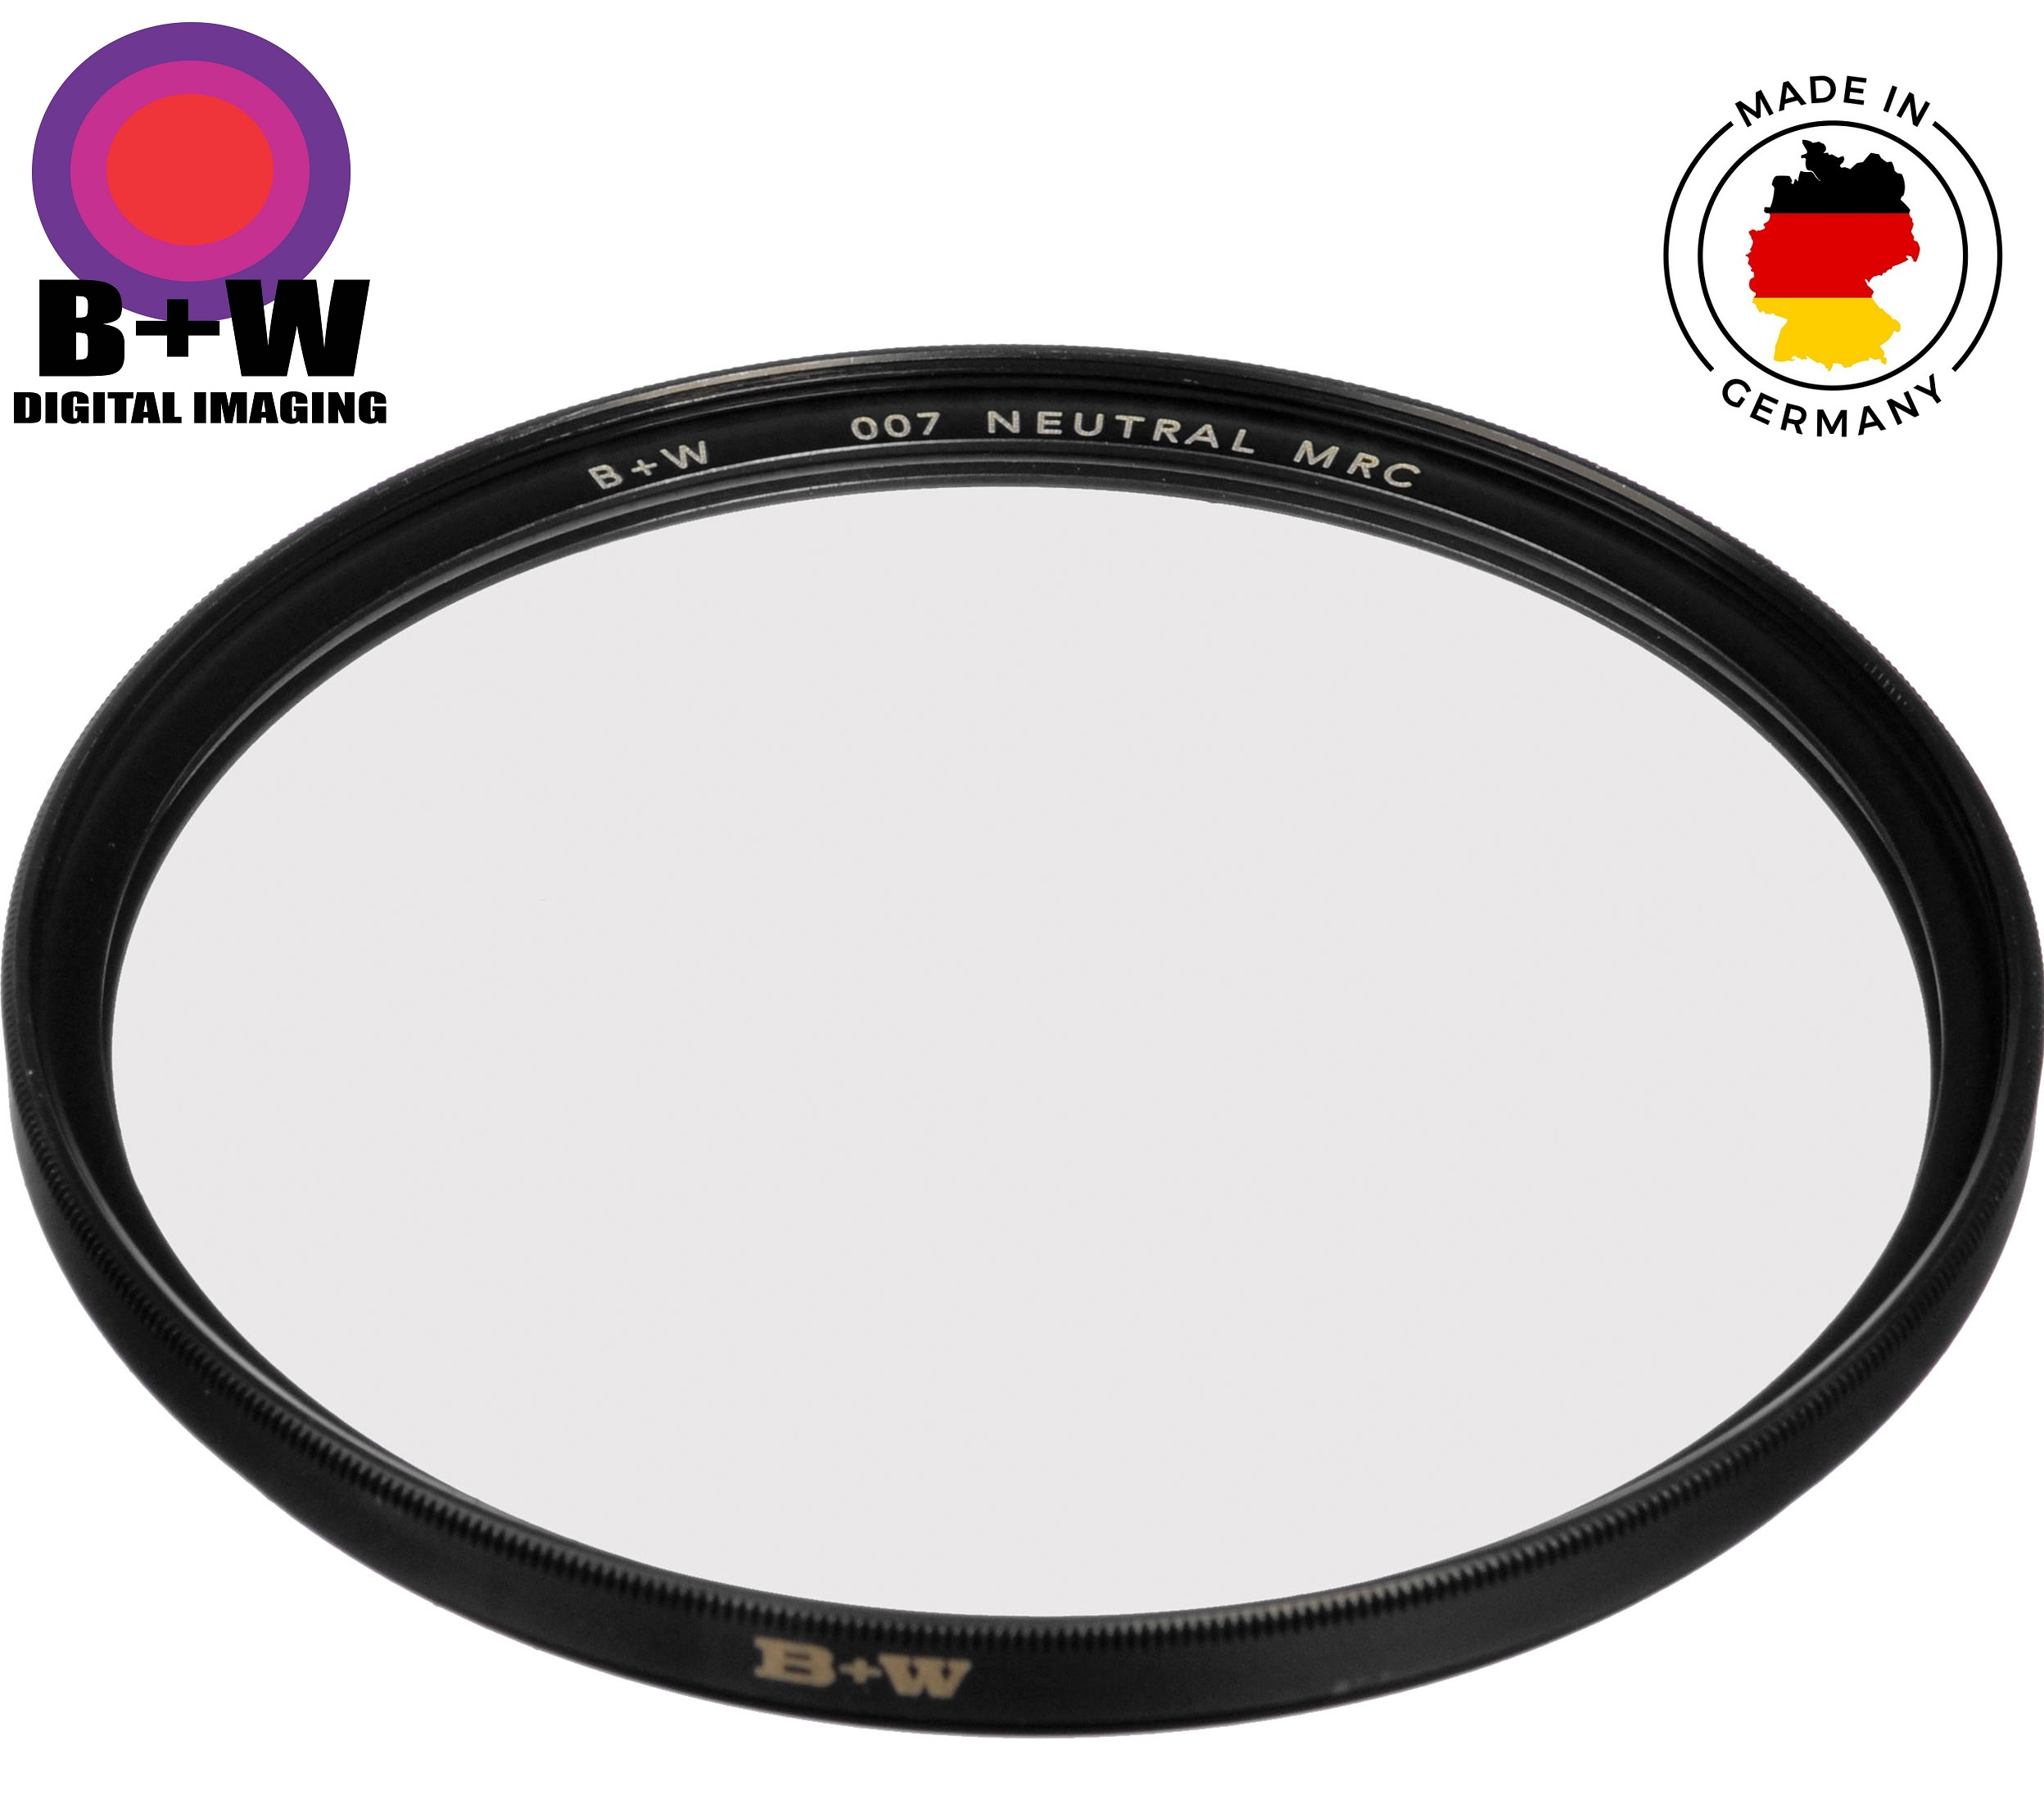 B+W 49mm Clear MRC F-Pro 007M Filter